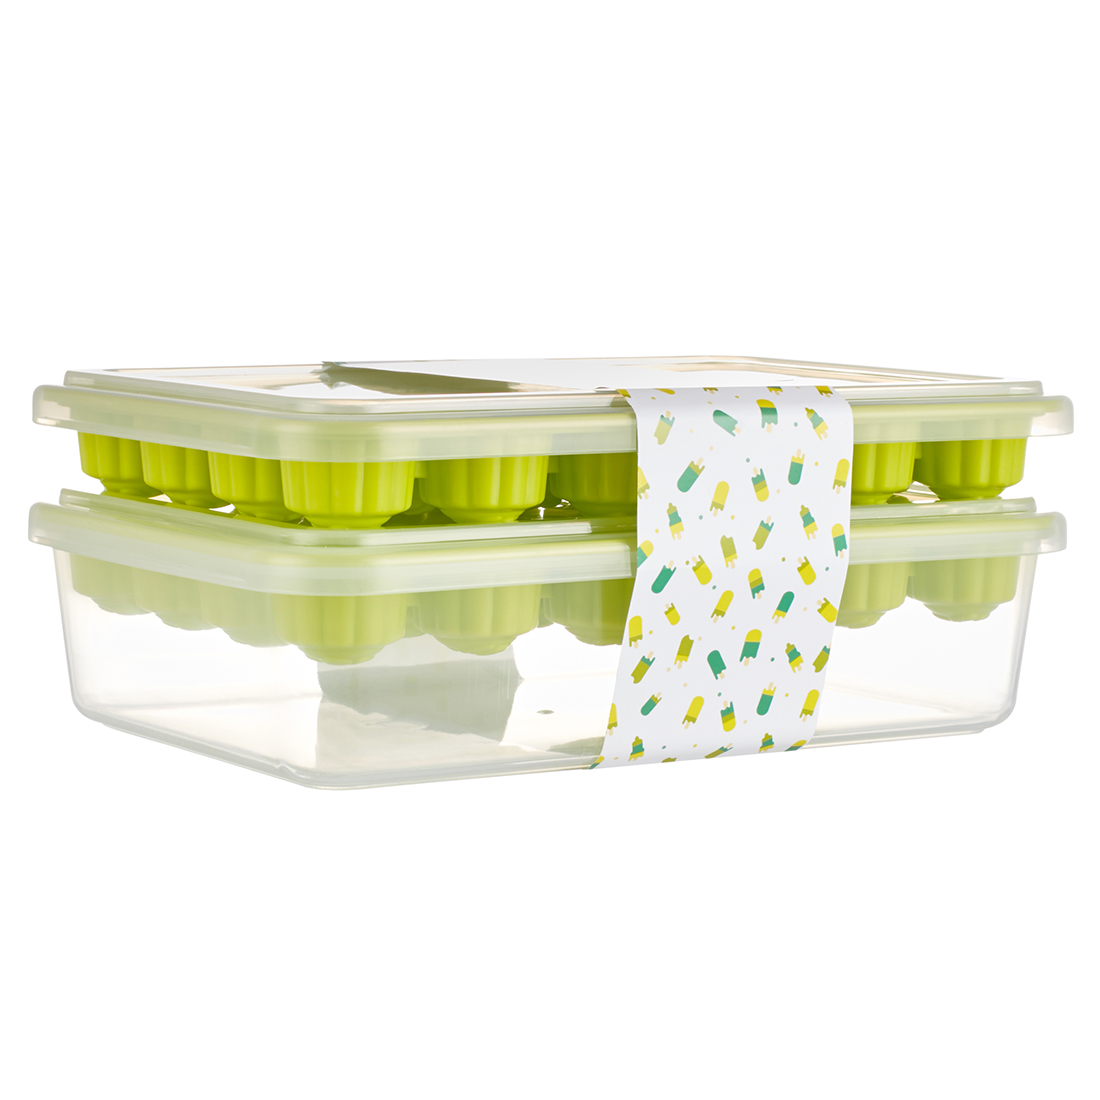 Ice Plastic Tray in Green Colour by Living Essence